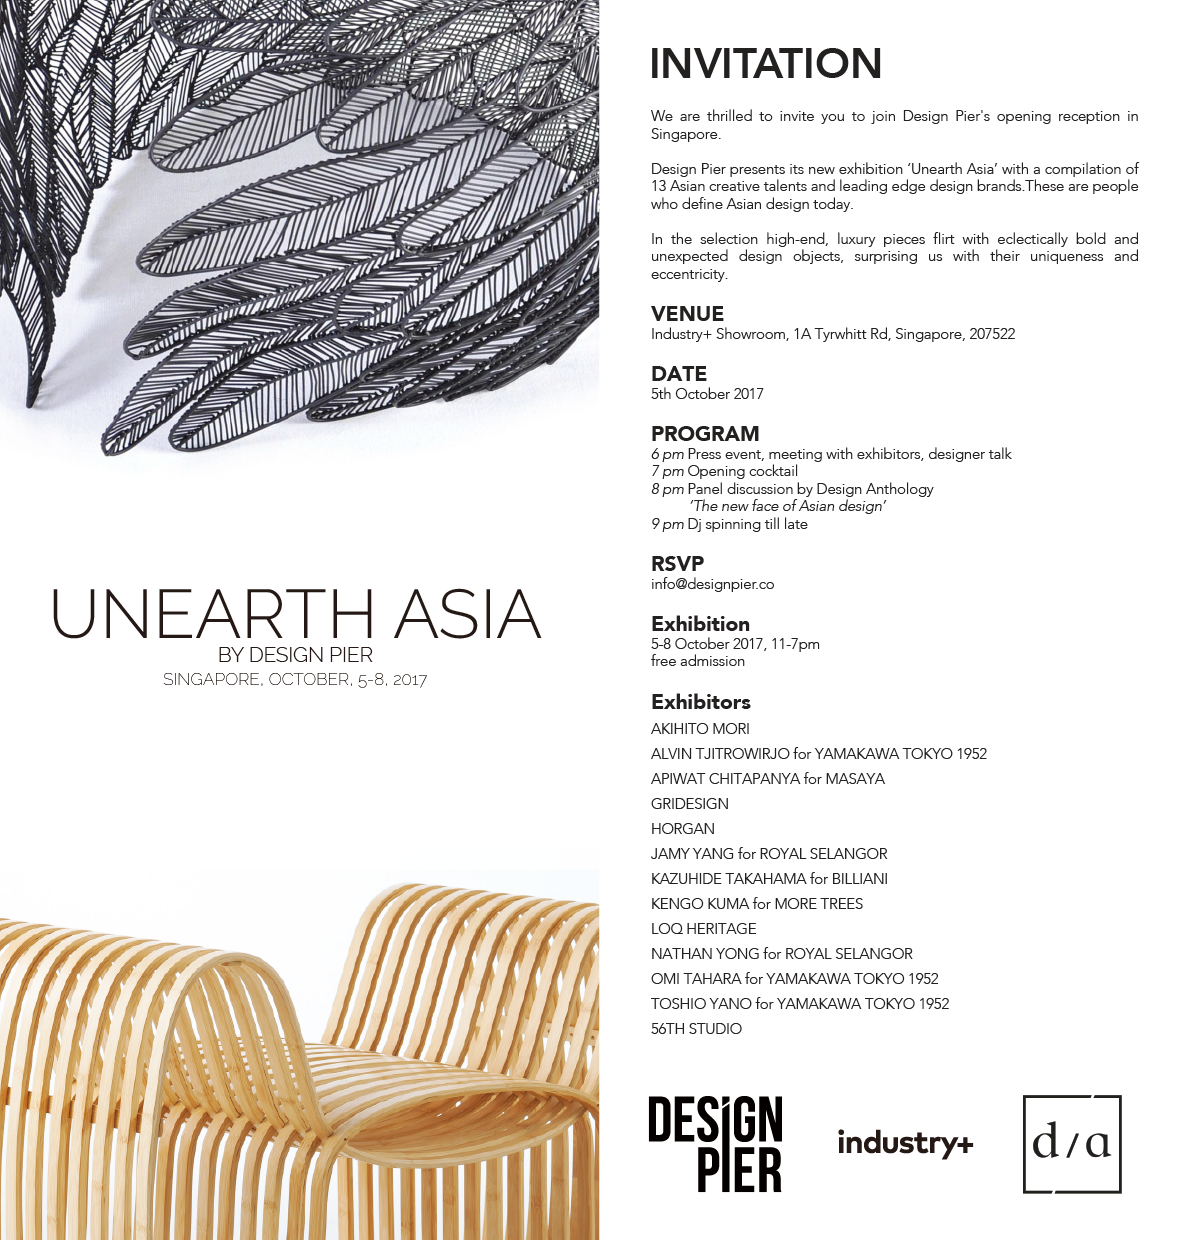 Design Pier & Industry+  Design Pier & Industry+  UNEARTH ASIA  Design Pier presents its new compilation of 13 Asian designers and brands called UNEARTH ASIA.  The exhibition aims to highlight how Asian design plays a defining role in the richness and cultural diversity in contemporary design as it is rediscovering itself and imposes its own unique traits and origins on the design landscape.  In the selection high-end, luxury pieces flirt with eclectically bold and youthful design objects, surprising us with their uniqueness and eccentricity.  Exhibitors: AKIHITO MORI, ALVIN TJITROWIRJO, TOSHIO YANO and OMI TAHARA for YAMAKAWA TOKYO 1952., APIWAT CHITAPANYA for MASAYA, HORGAN, JAMY YANG, NATHAN YONG for ROYAL SELANGOR, KAZUHIDE TAKAHAMA for BILLIANI, KENGO KUMA for MORE TREES, LOQ HERITAGE, 56TH STUDIO, GRIDESIGN  Unearth Asia is the anchor event of Industry+'s new initiative: '1km', a design itinerary composed of 20 design studios, architect studios, design brand's showrooms.  UNEARTH ASIADesign Pier presents its new compilation of 12 Asian designers and brands called UNEARTH